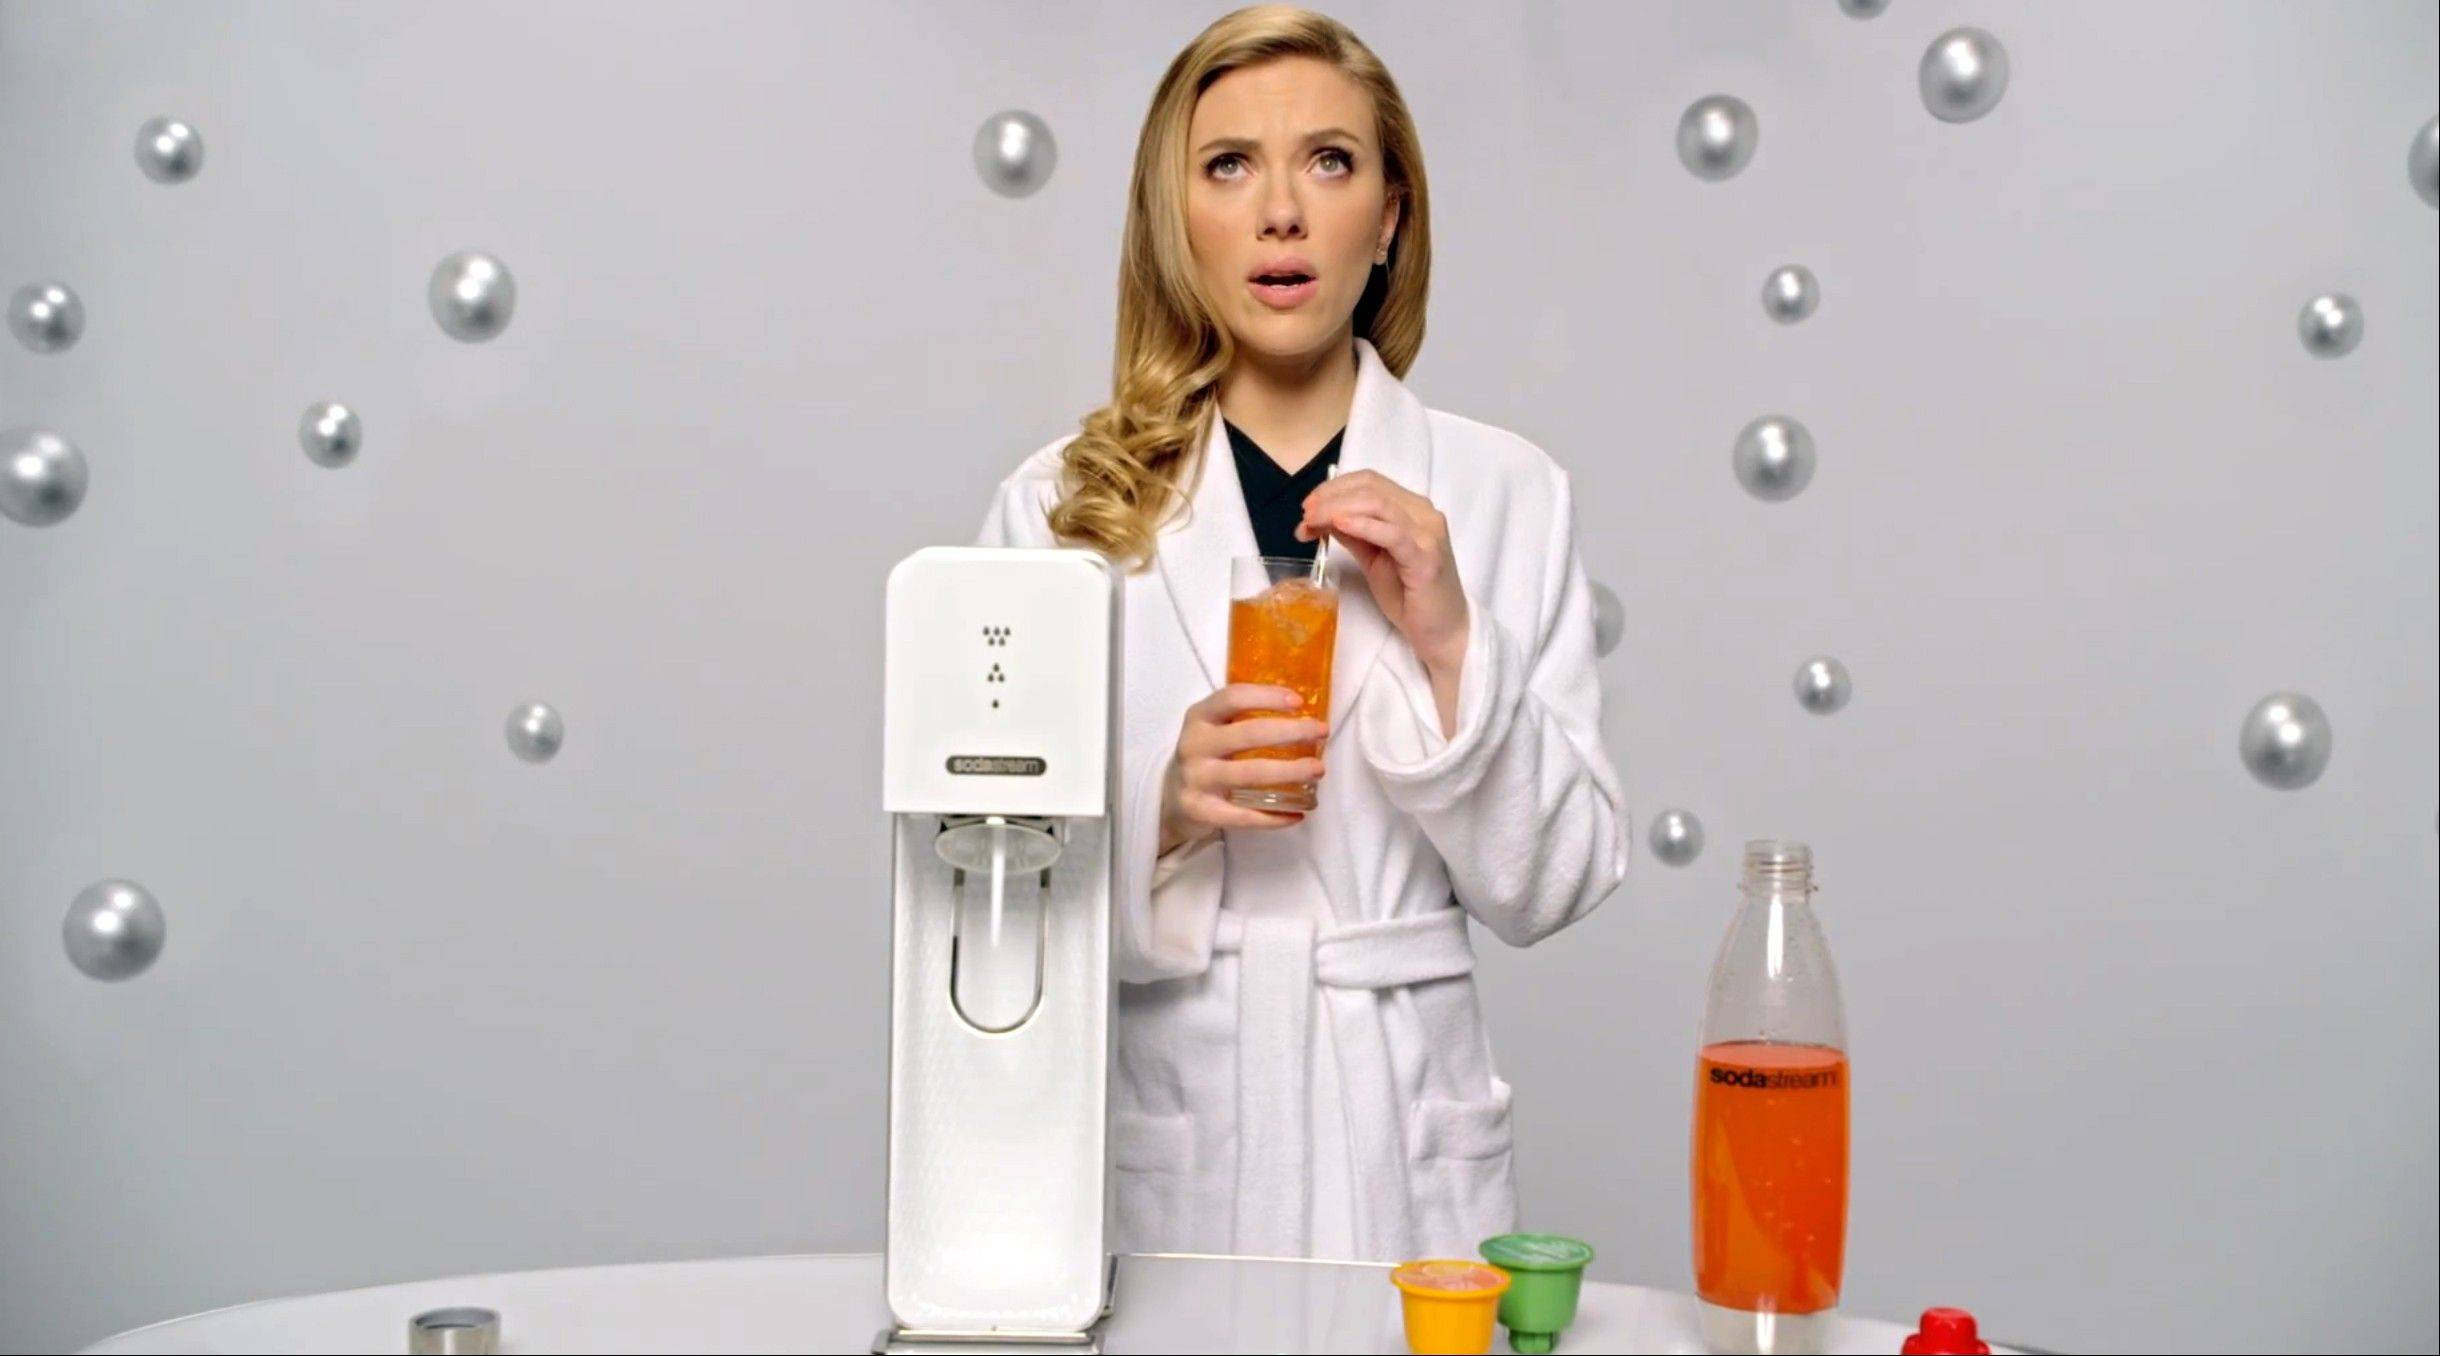 SodaStream�s ad features �Her� actress Scarlett Johansson promoting its at-home soda maker and will run in the fourth quarter. The ad, which promotes the product as a healthier and less wasteful way to make soda, made waves ahead of the game when the company said it would delete its last line, �Sorry, Coke and Pepsi,� at a request by Fox.